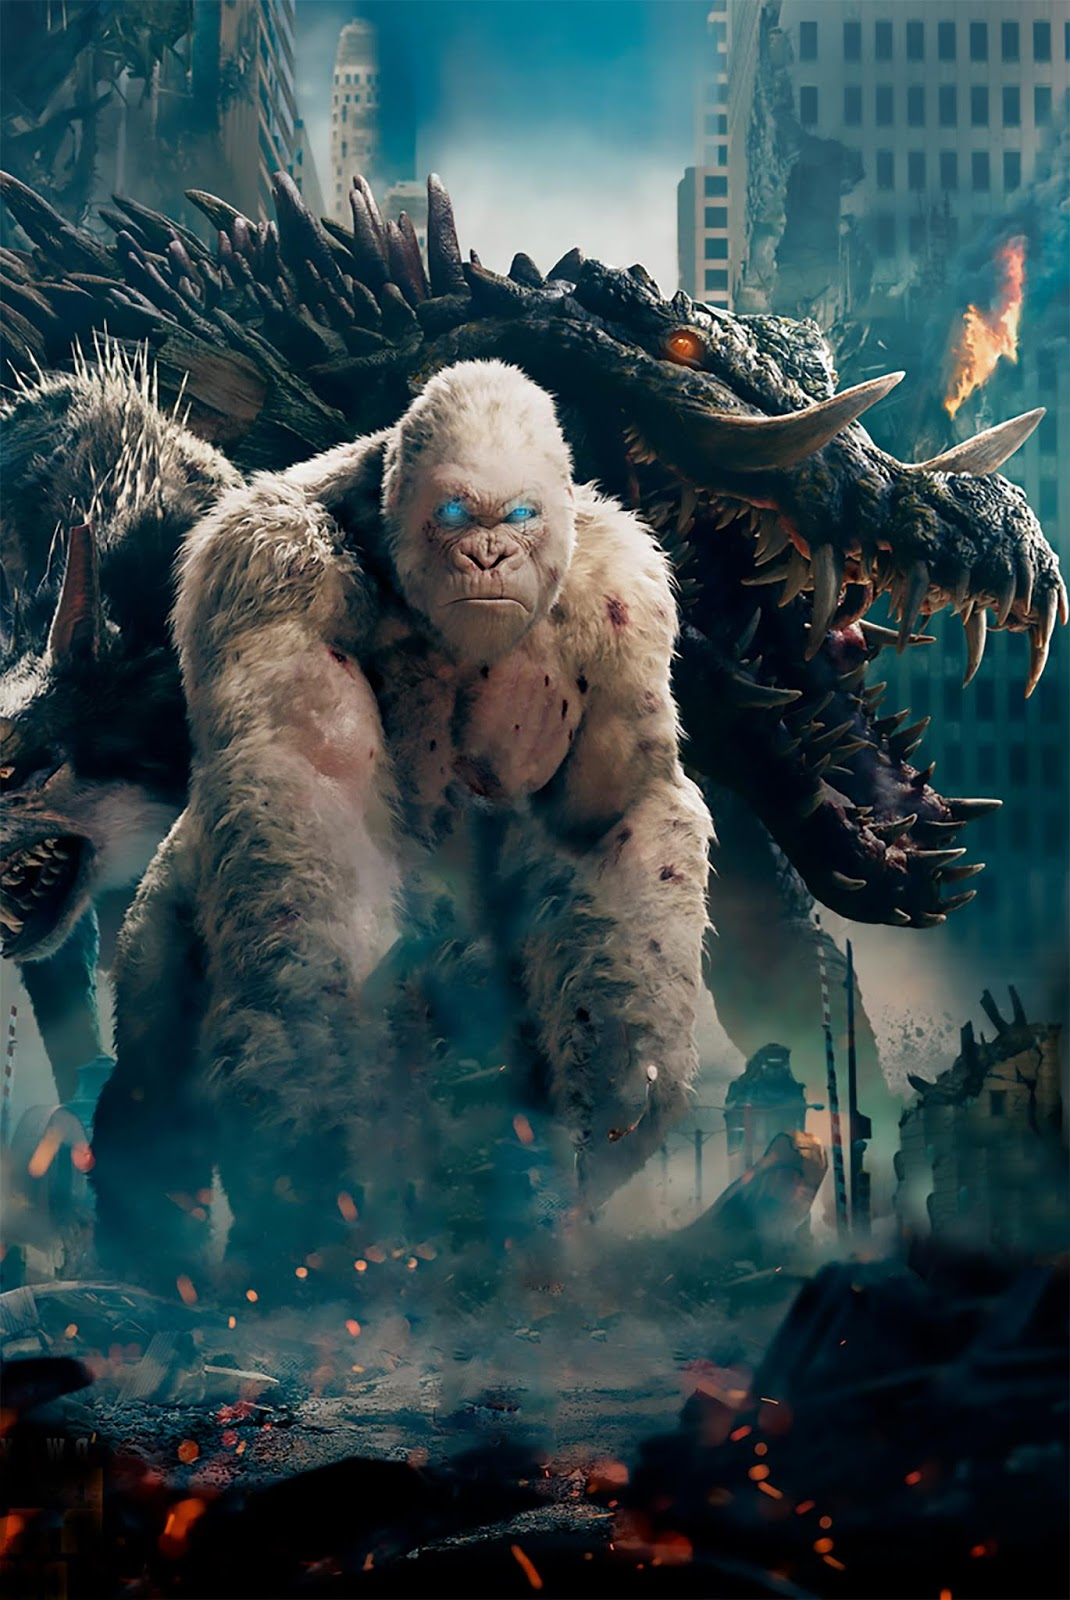 Rampage Movie Poster Editing Png Image Background Download